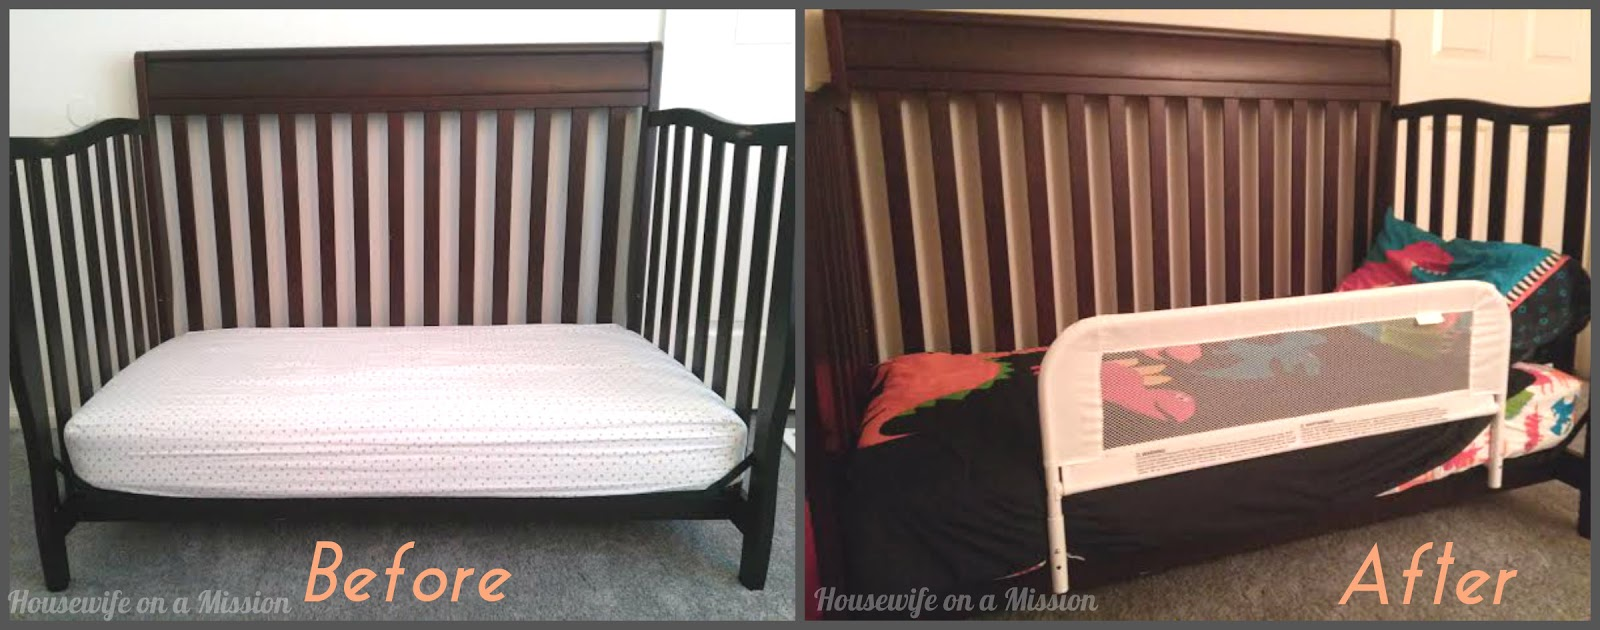 Convertible Crib Bed Rail Interesting Letus Talk About